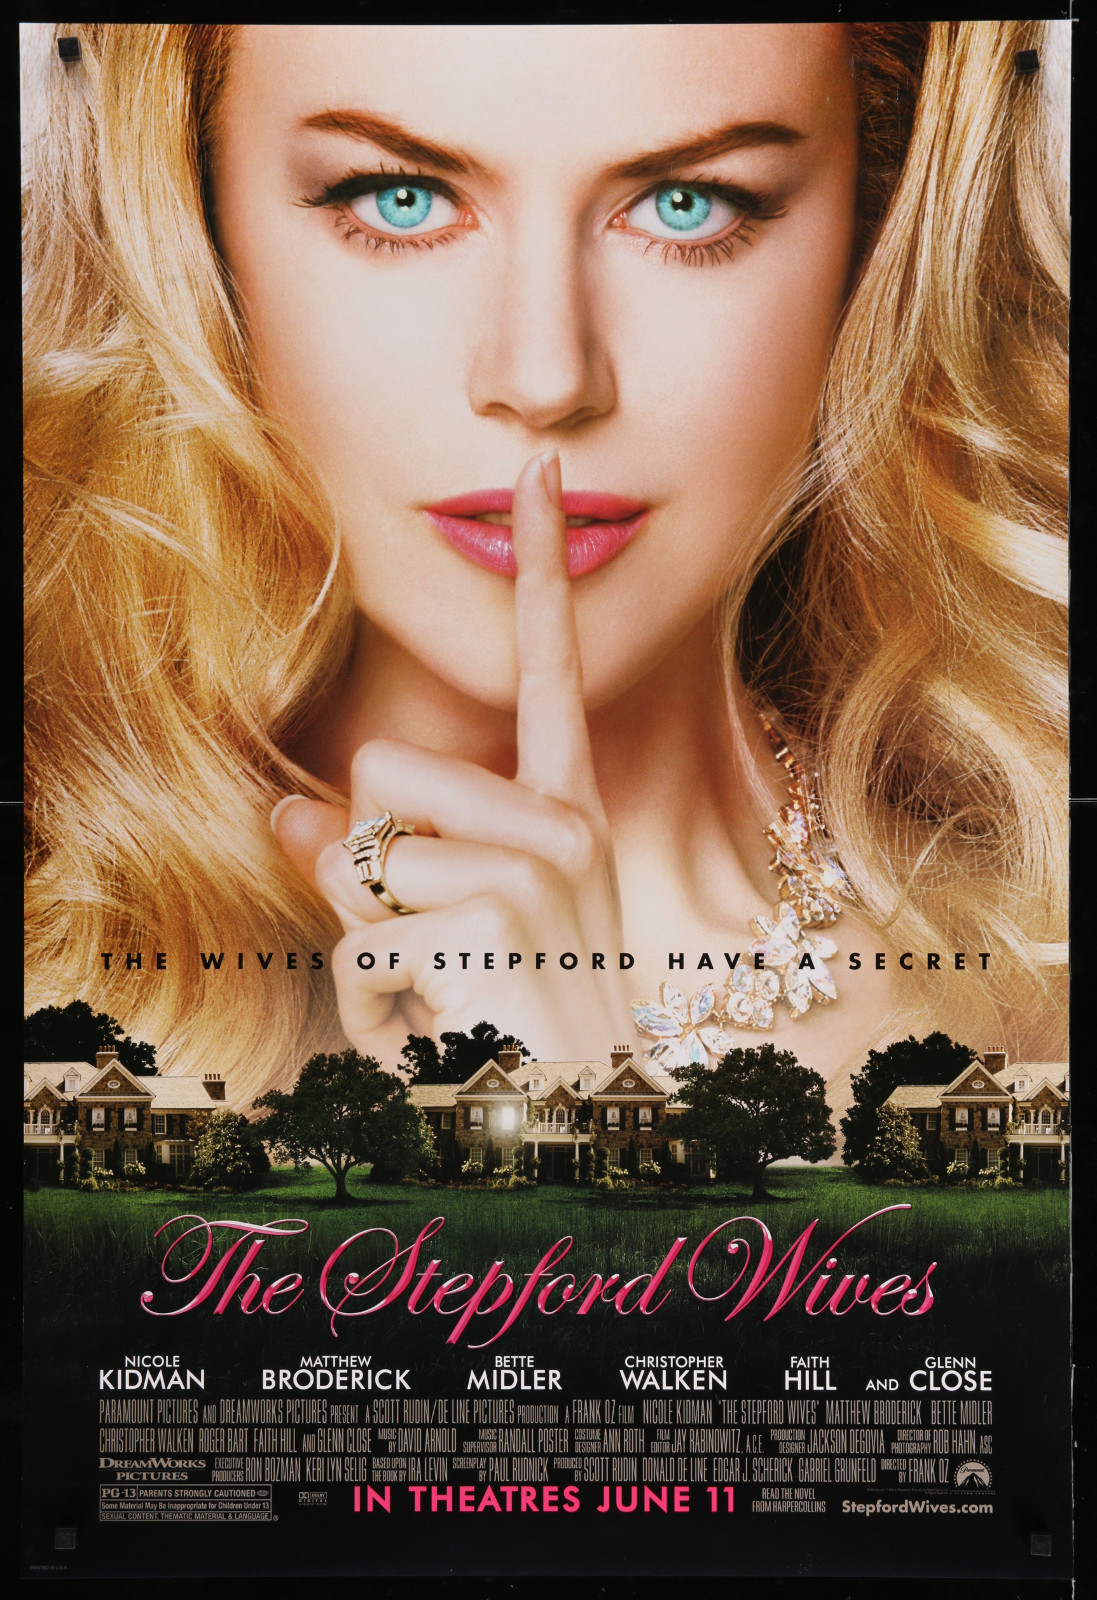 The Stepford Wives 2A366 A Part Of A Lot 29 Unfolded Double-Sided 27X40 One-Sheets '90S-00S Great Movie Images!